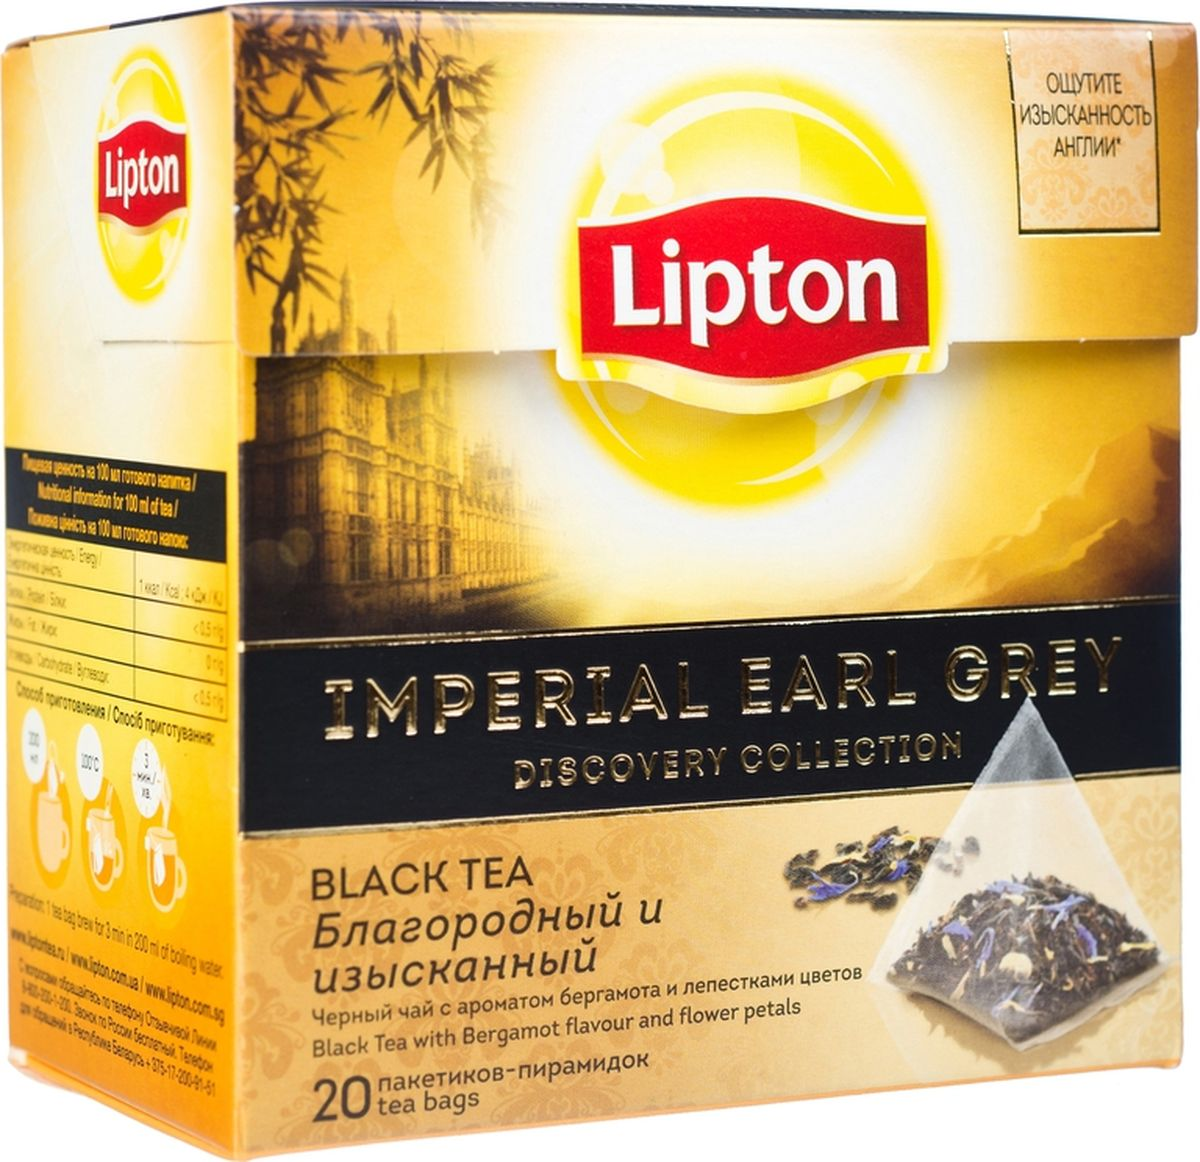 pest lipton tea So green tea organics has the opportunity to capture the market they have the opportunity to increase the promotion and awareness of the product through proper advertising and promotional strategies 64 threats brands like lipton have established their products a long time ago for which they also have a strong brand image.